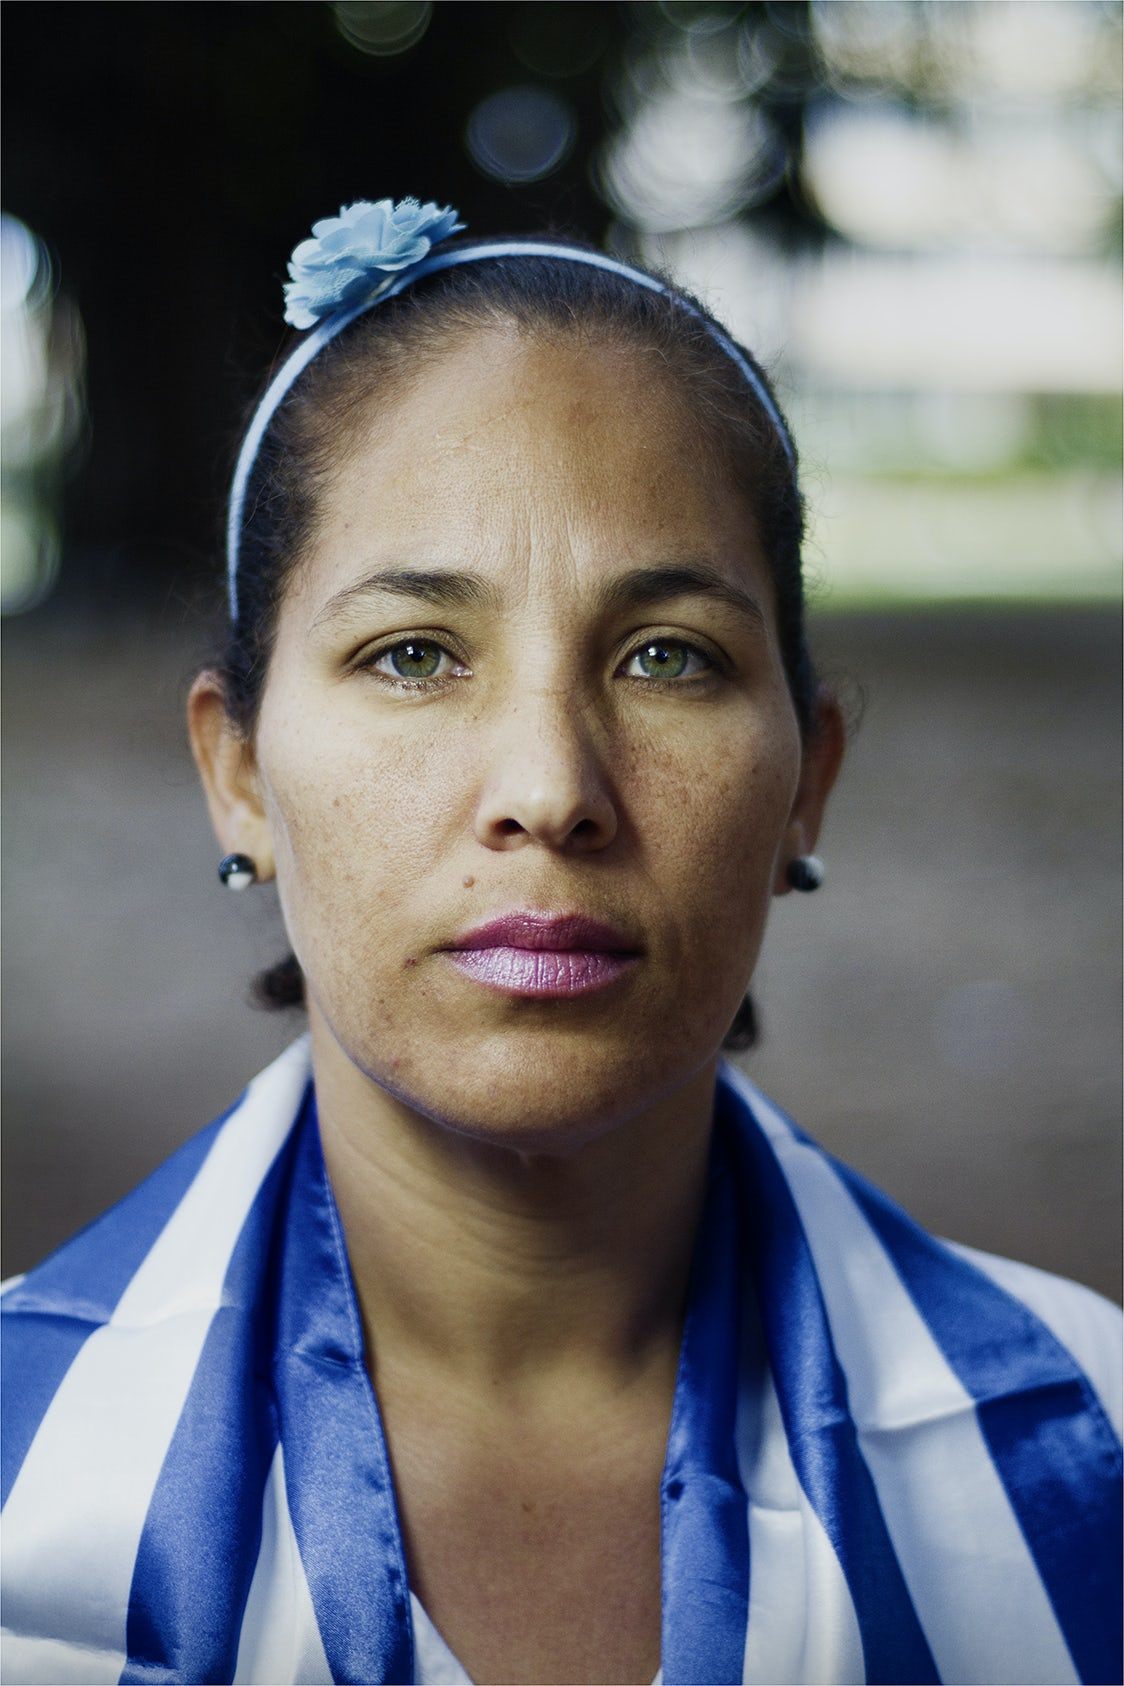 Lismeirys Quintana has been sentenced to six months in prison on politically motivated charges. Photo by Claudio Fuentes